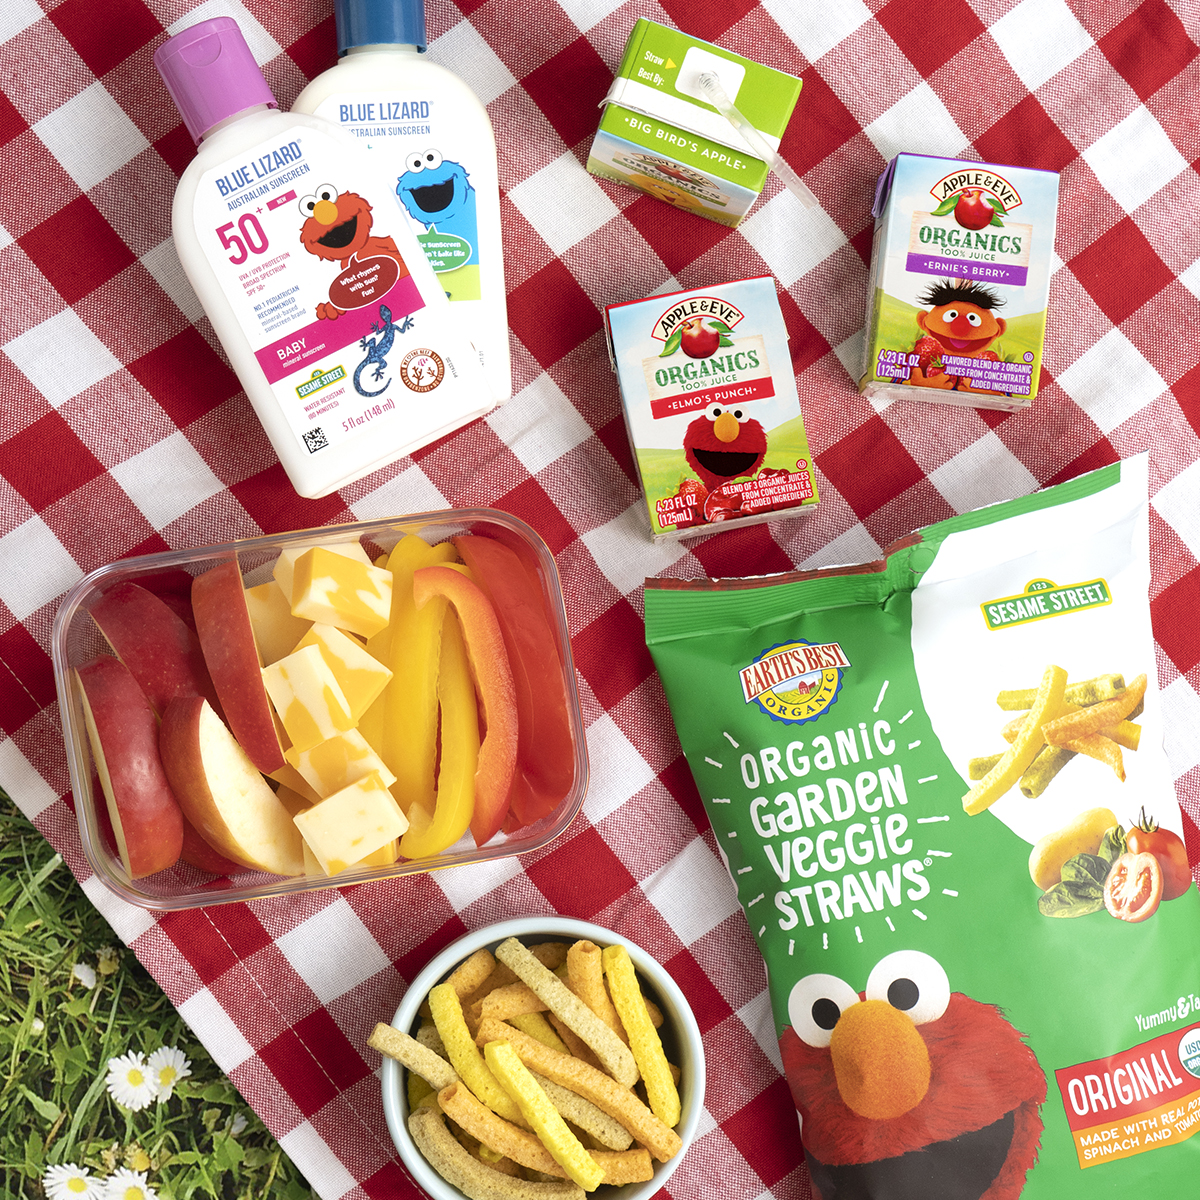 Picnic scene with Blue Lizard Sunscreen, Apple & Eve juice boxes and Earth''s Best Organic Garden Veggie Straws